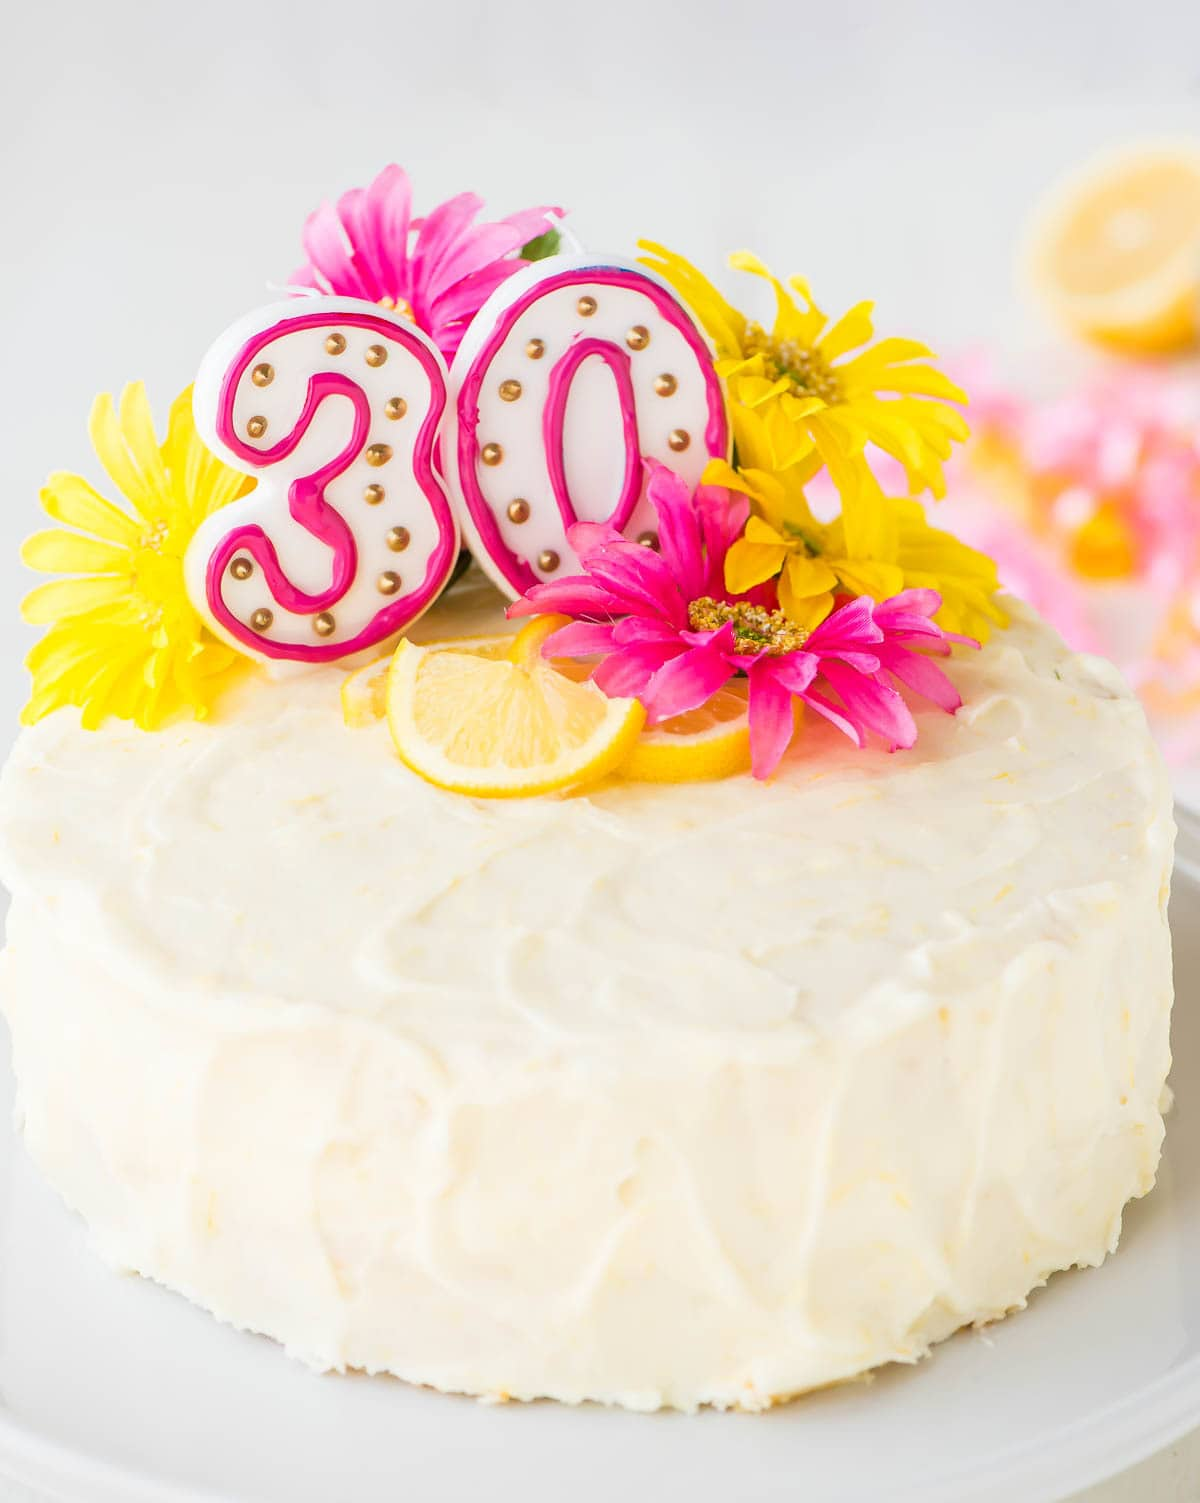 Lemon Layer Cake Decorated With Fresh Yellow And Pink Flowers Candles For A 30th Birthday